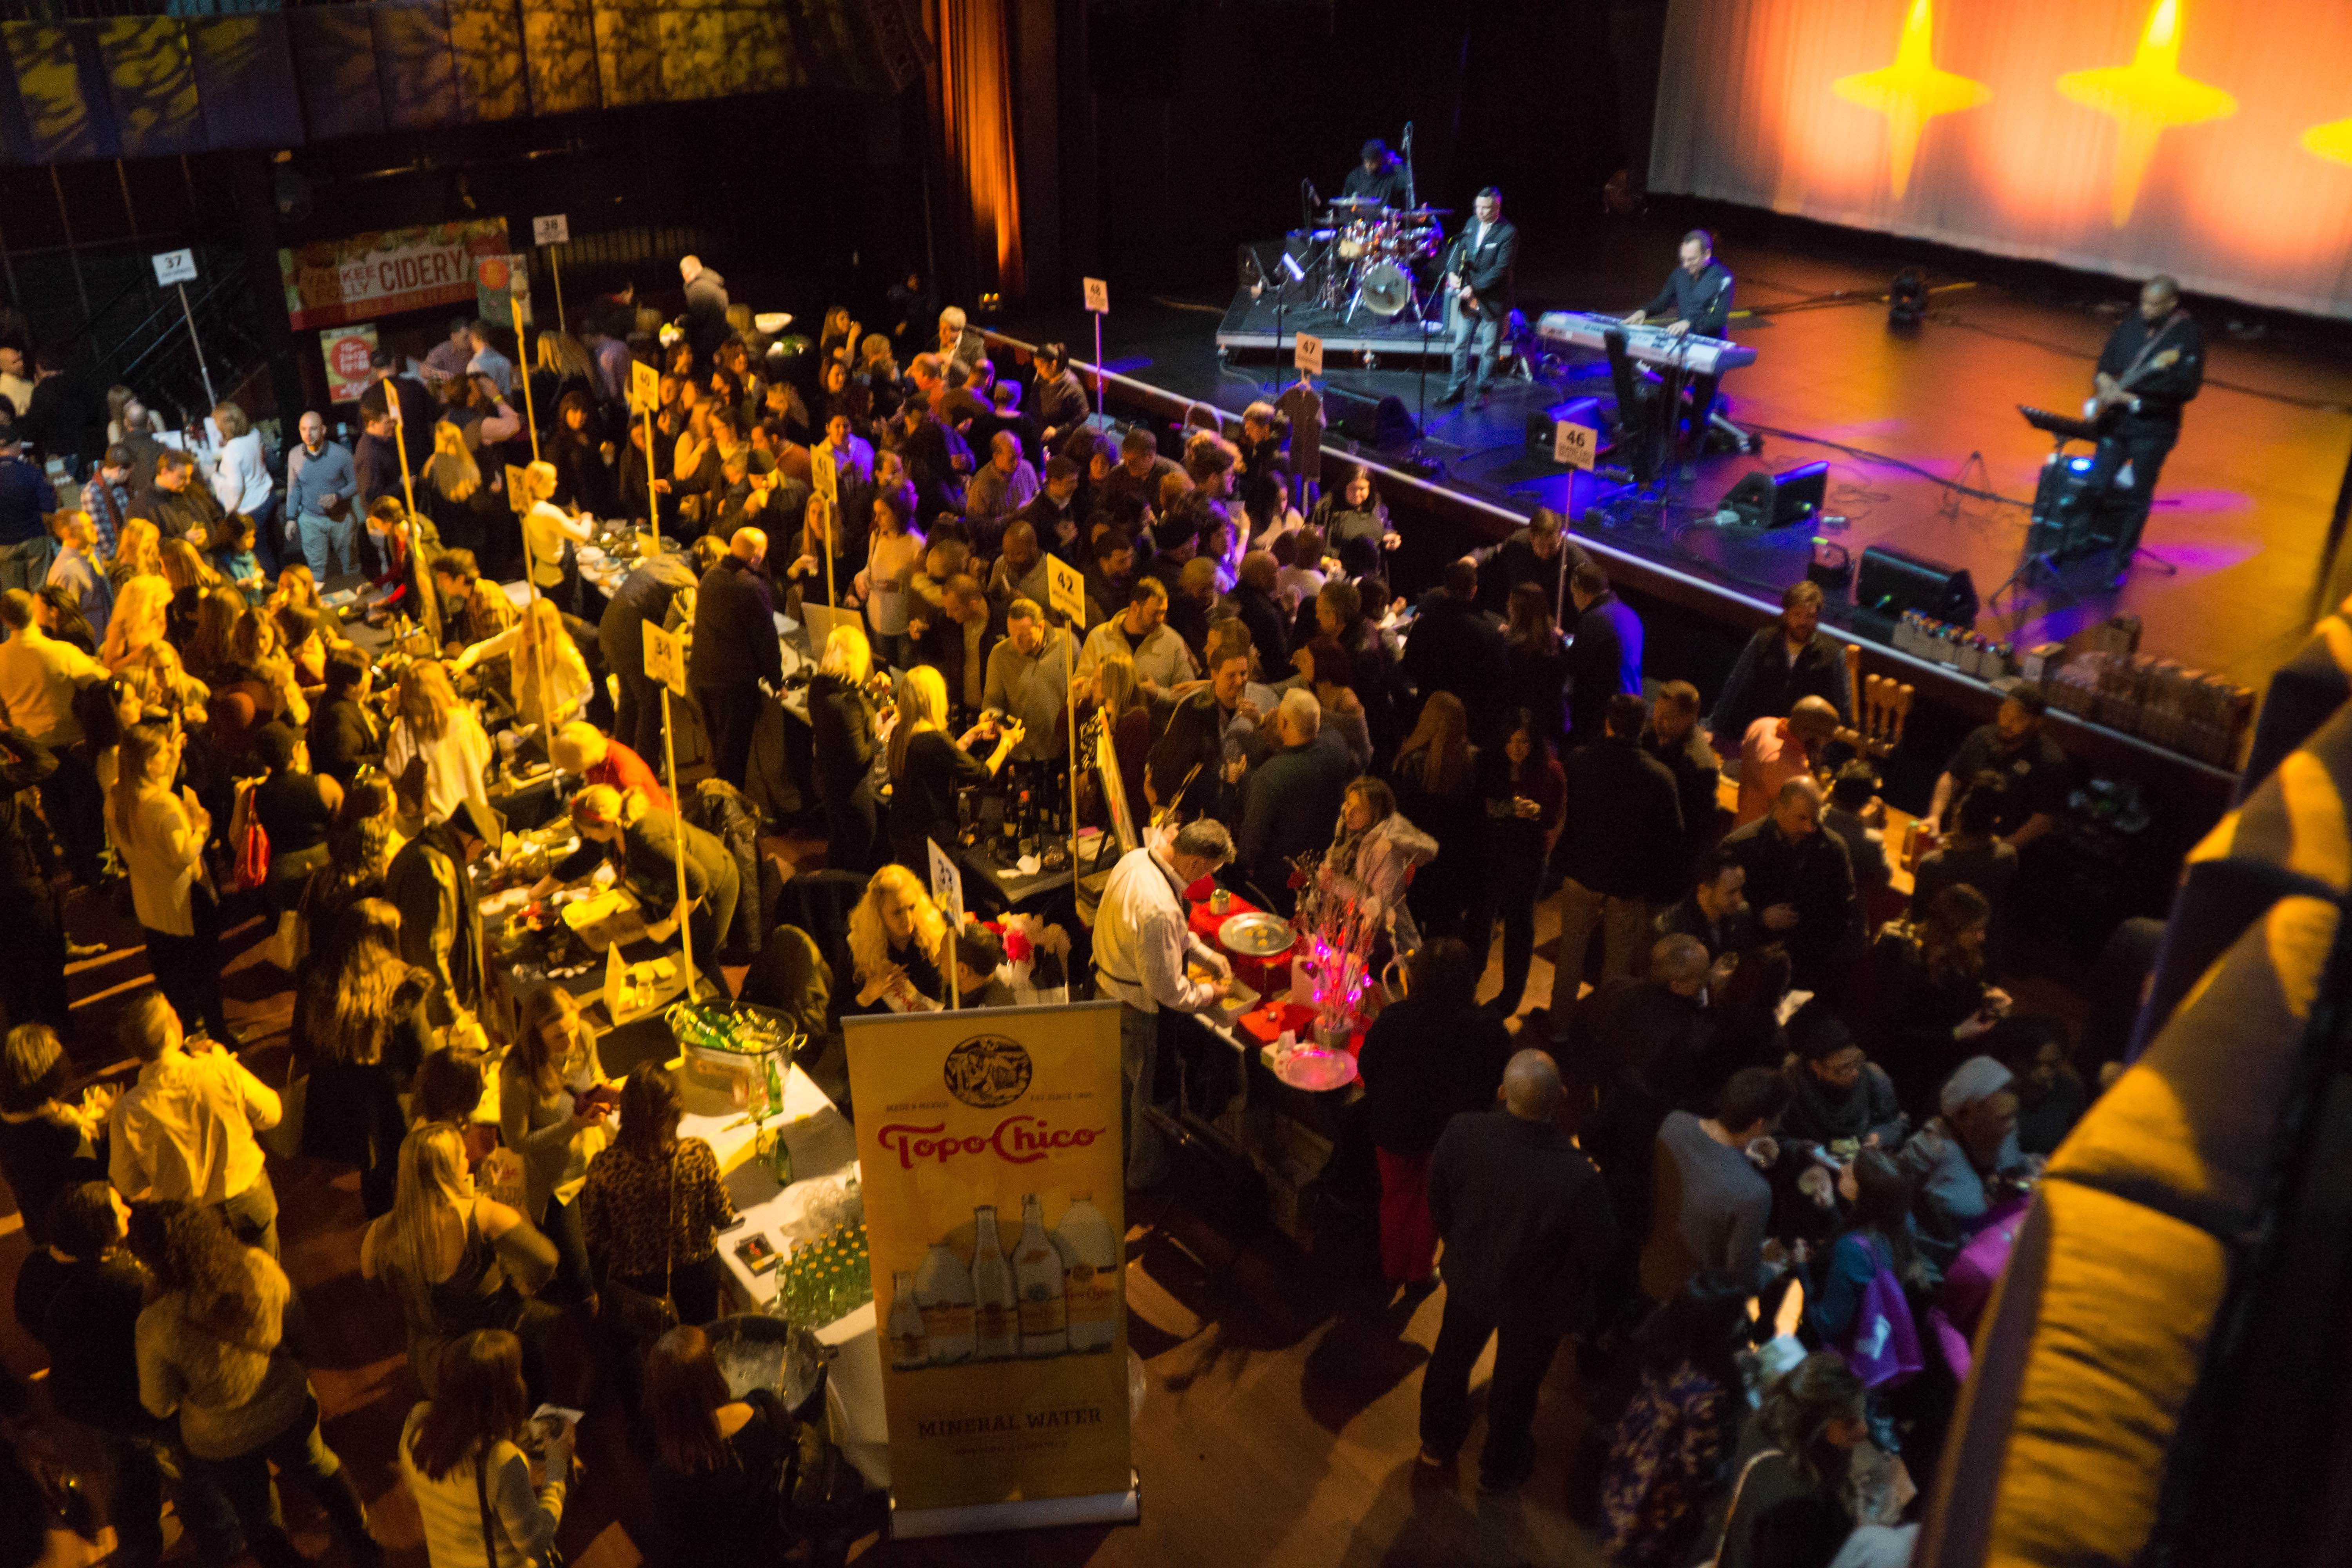 New York Wine Events To Present 9th Annual Nyc Winter Wine